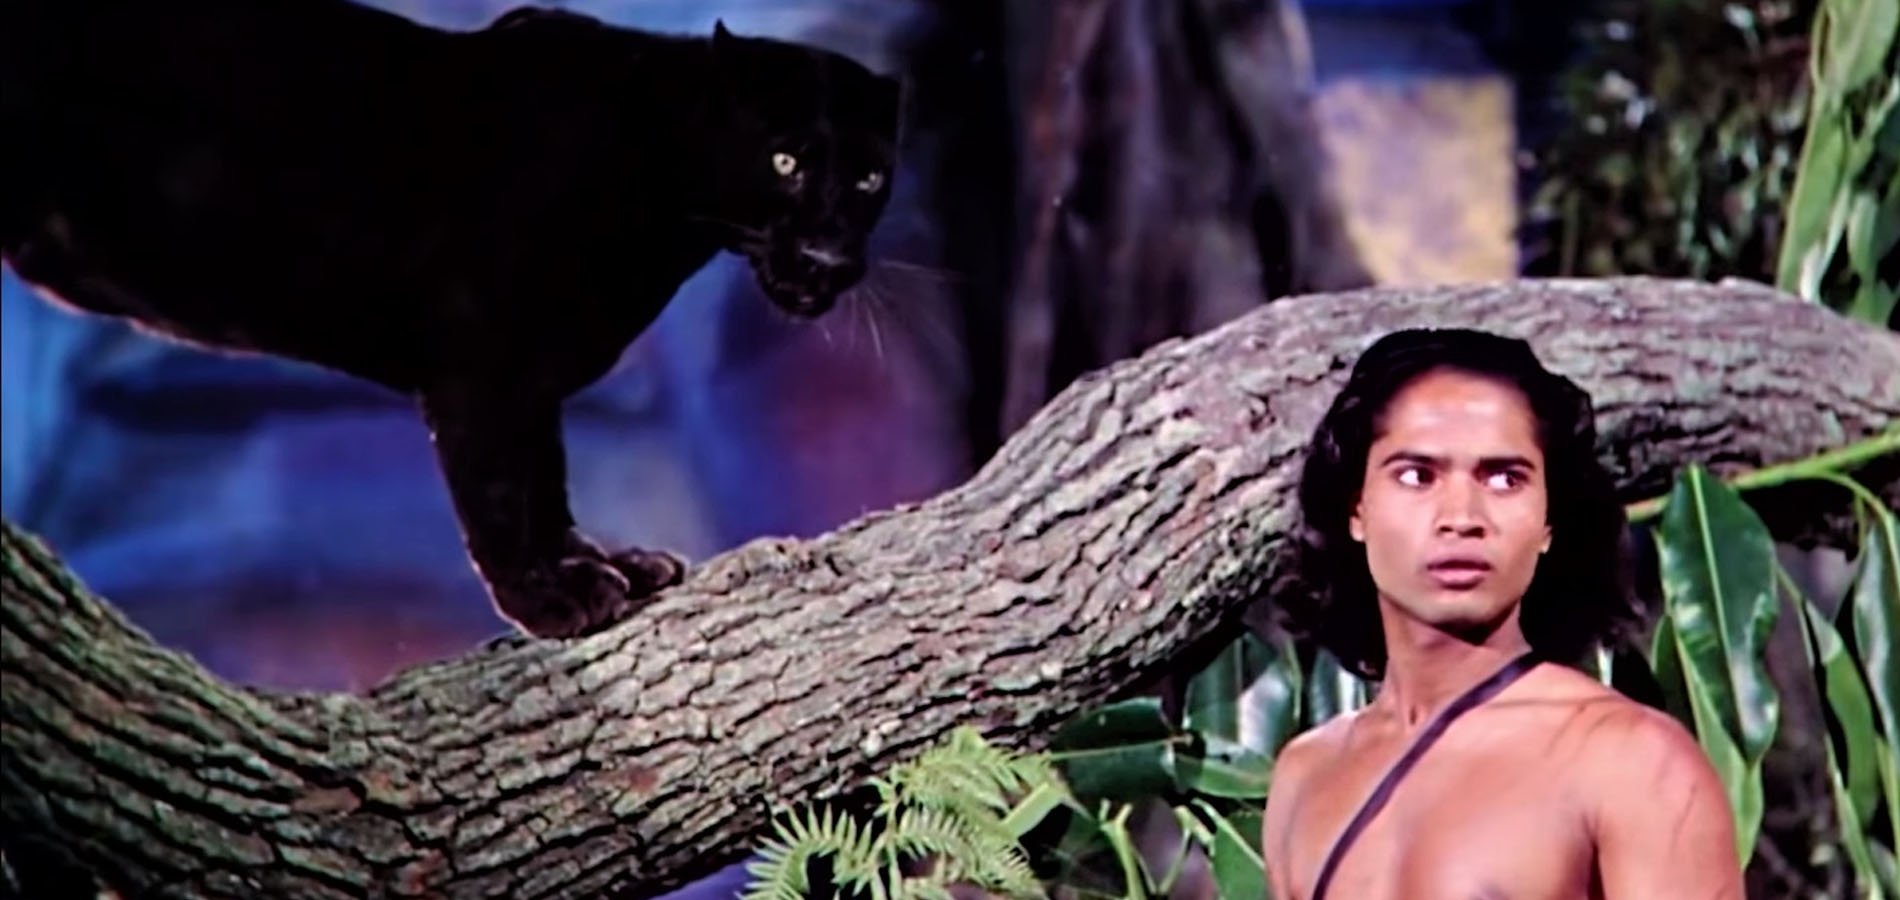 a black panther stands on a large horizontal tree branch. Mowgli, a boy with long dark hair, stands near the black panther.